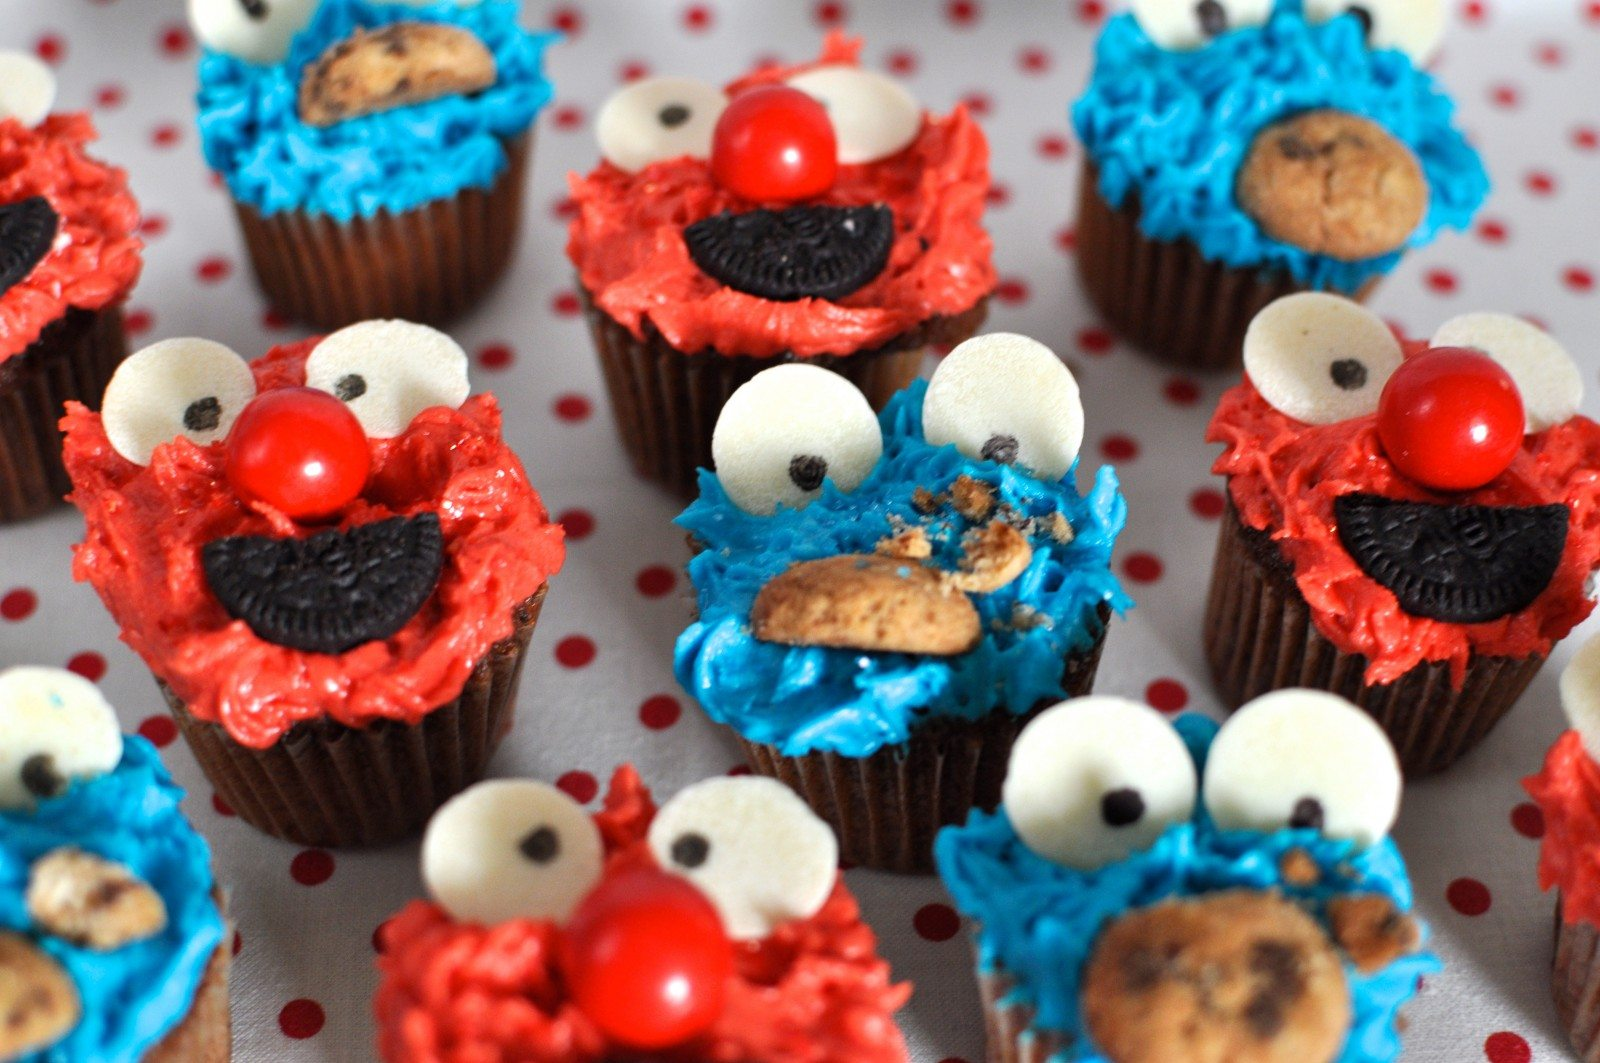 Sesame street cupcakes